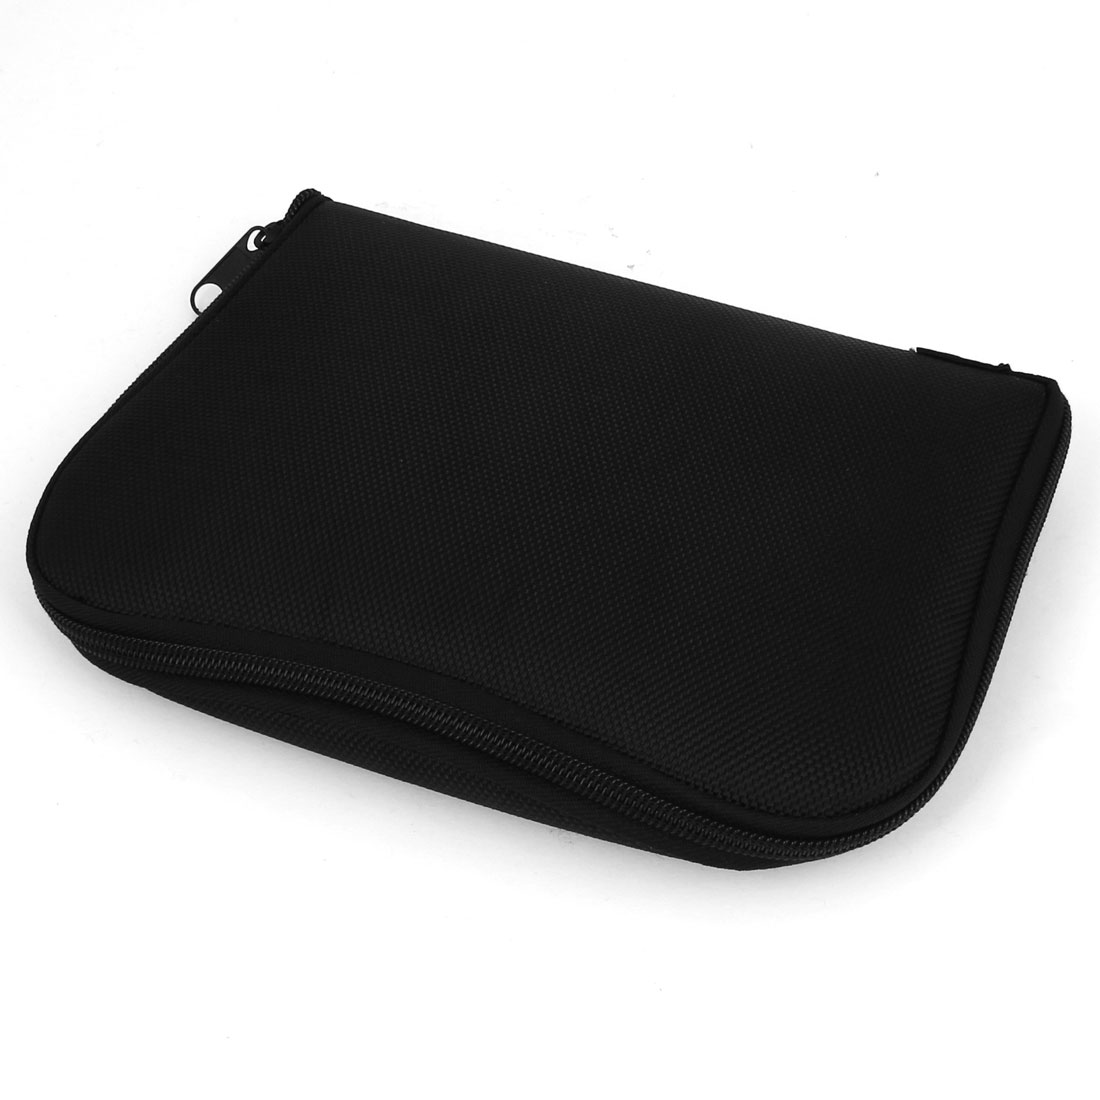 Zipper Closure Black Nylon 2 Compartment Foldable Tool Holder Bag